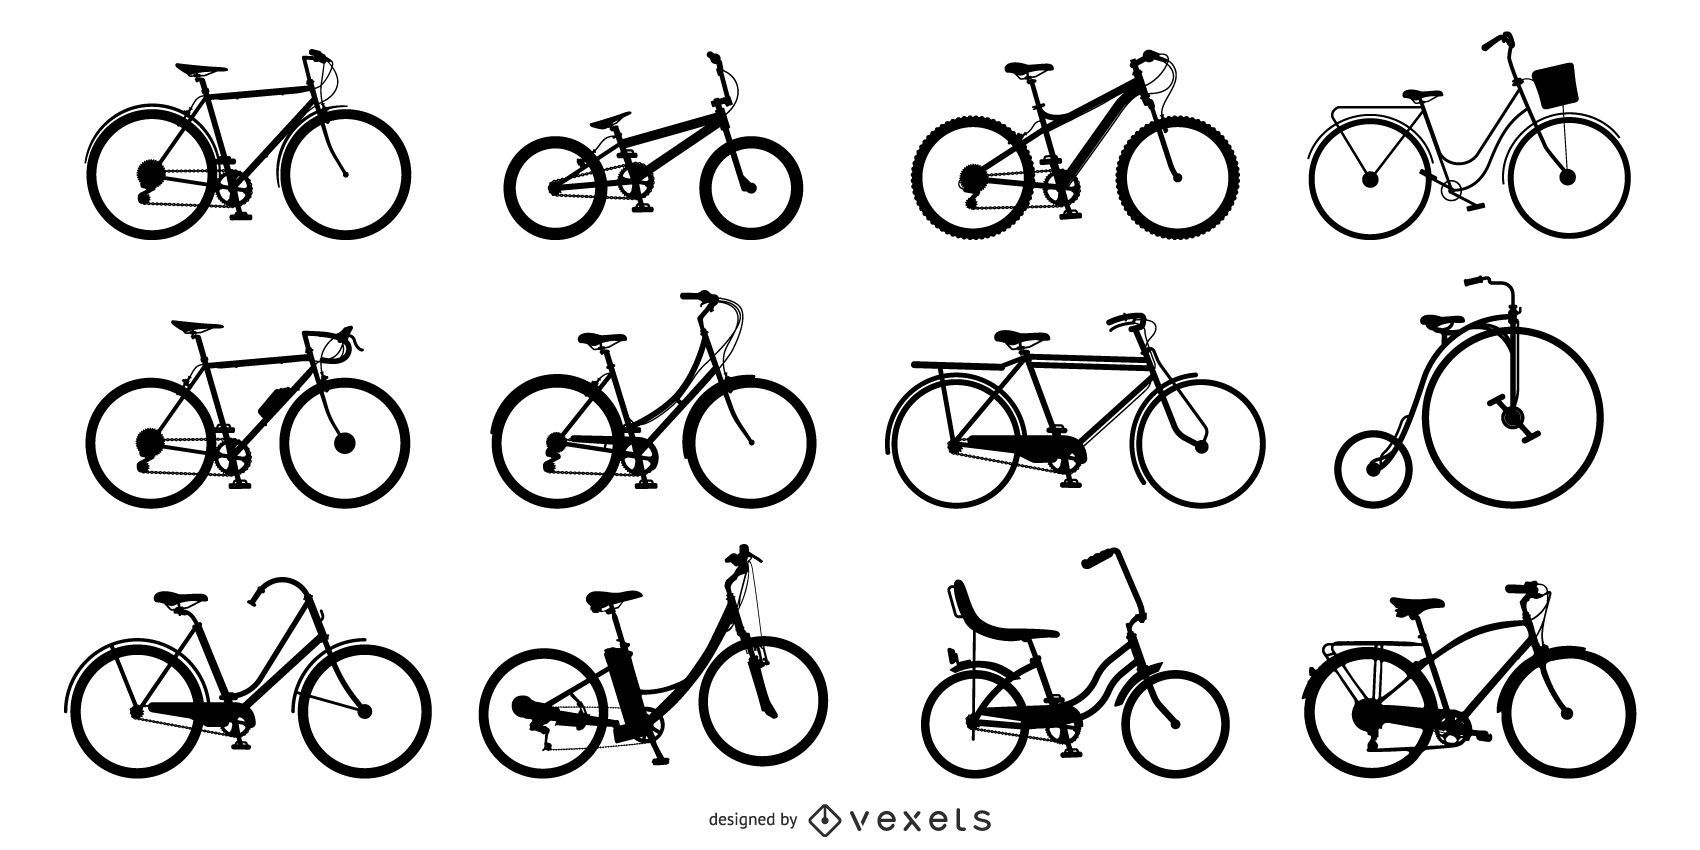 Bicycle Silhouette Design Set